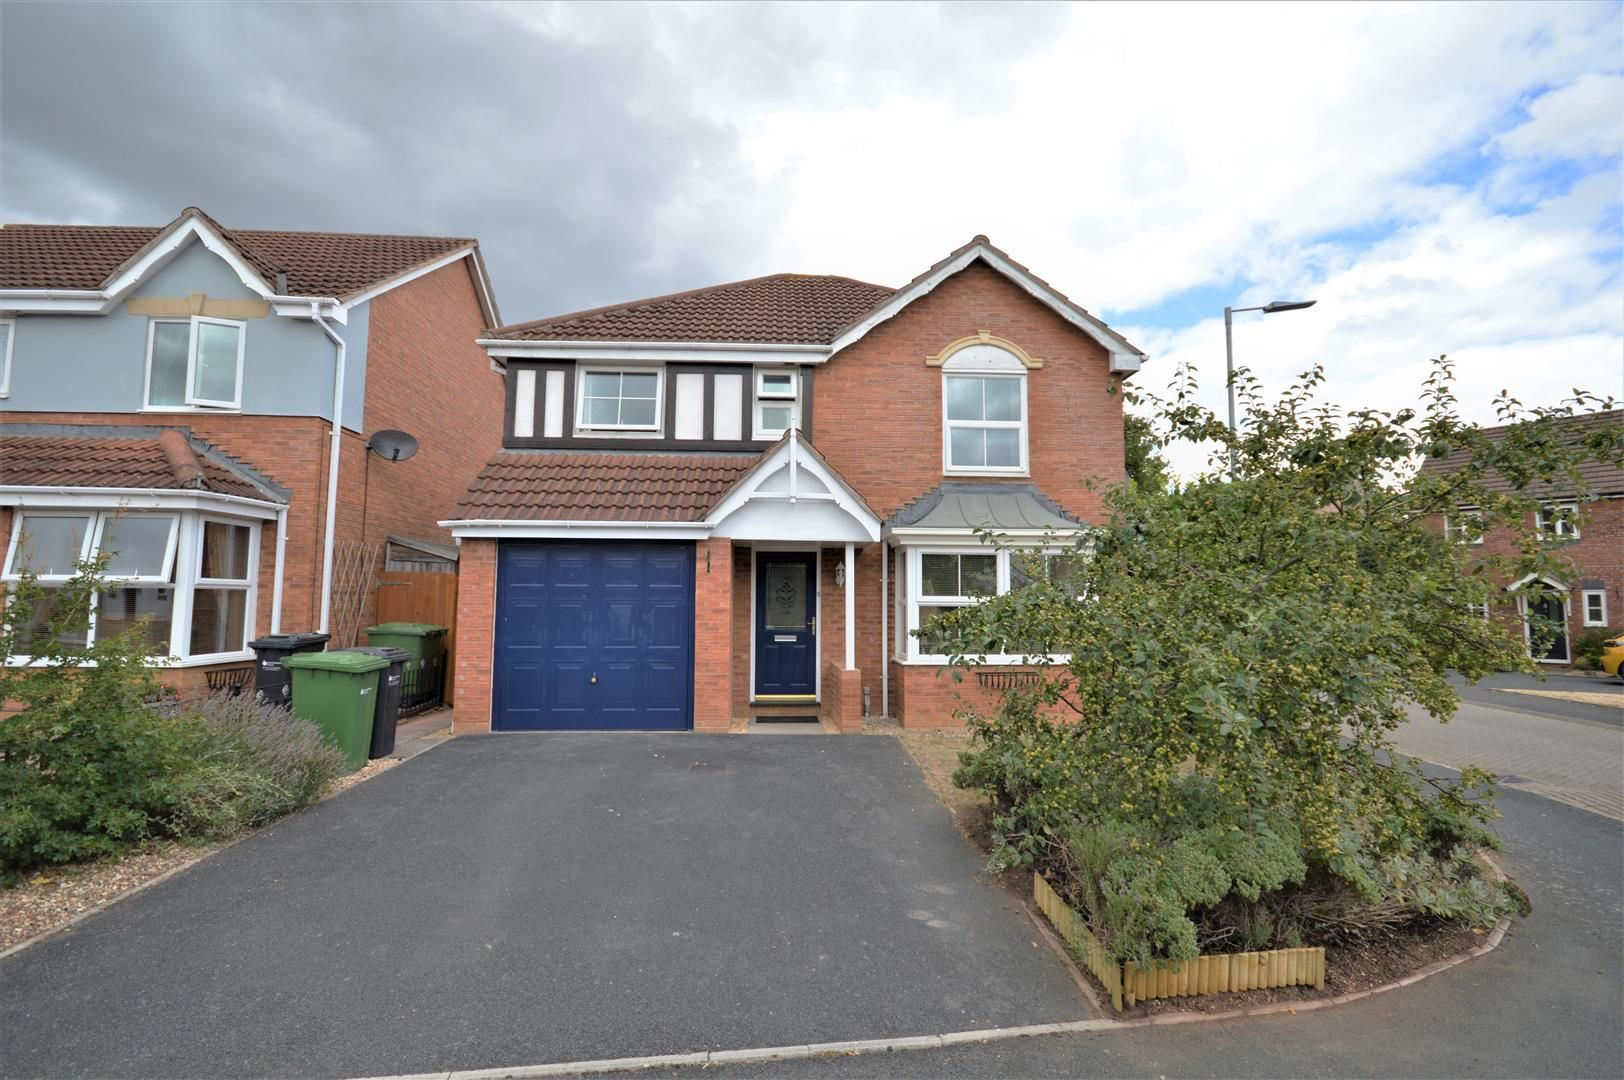 4 bed detached for sale in Belmont 1